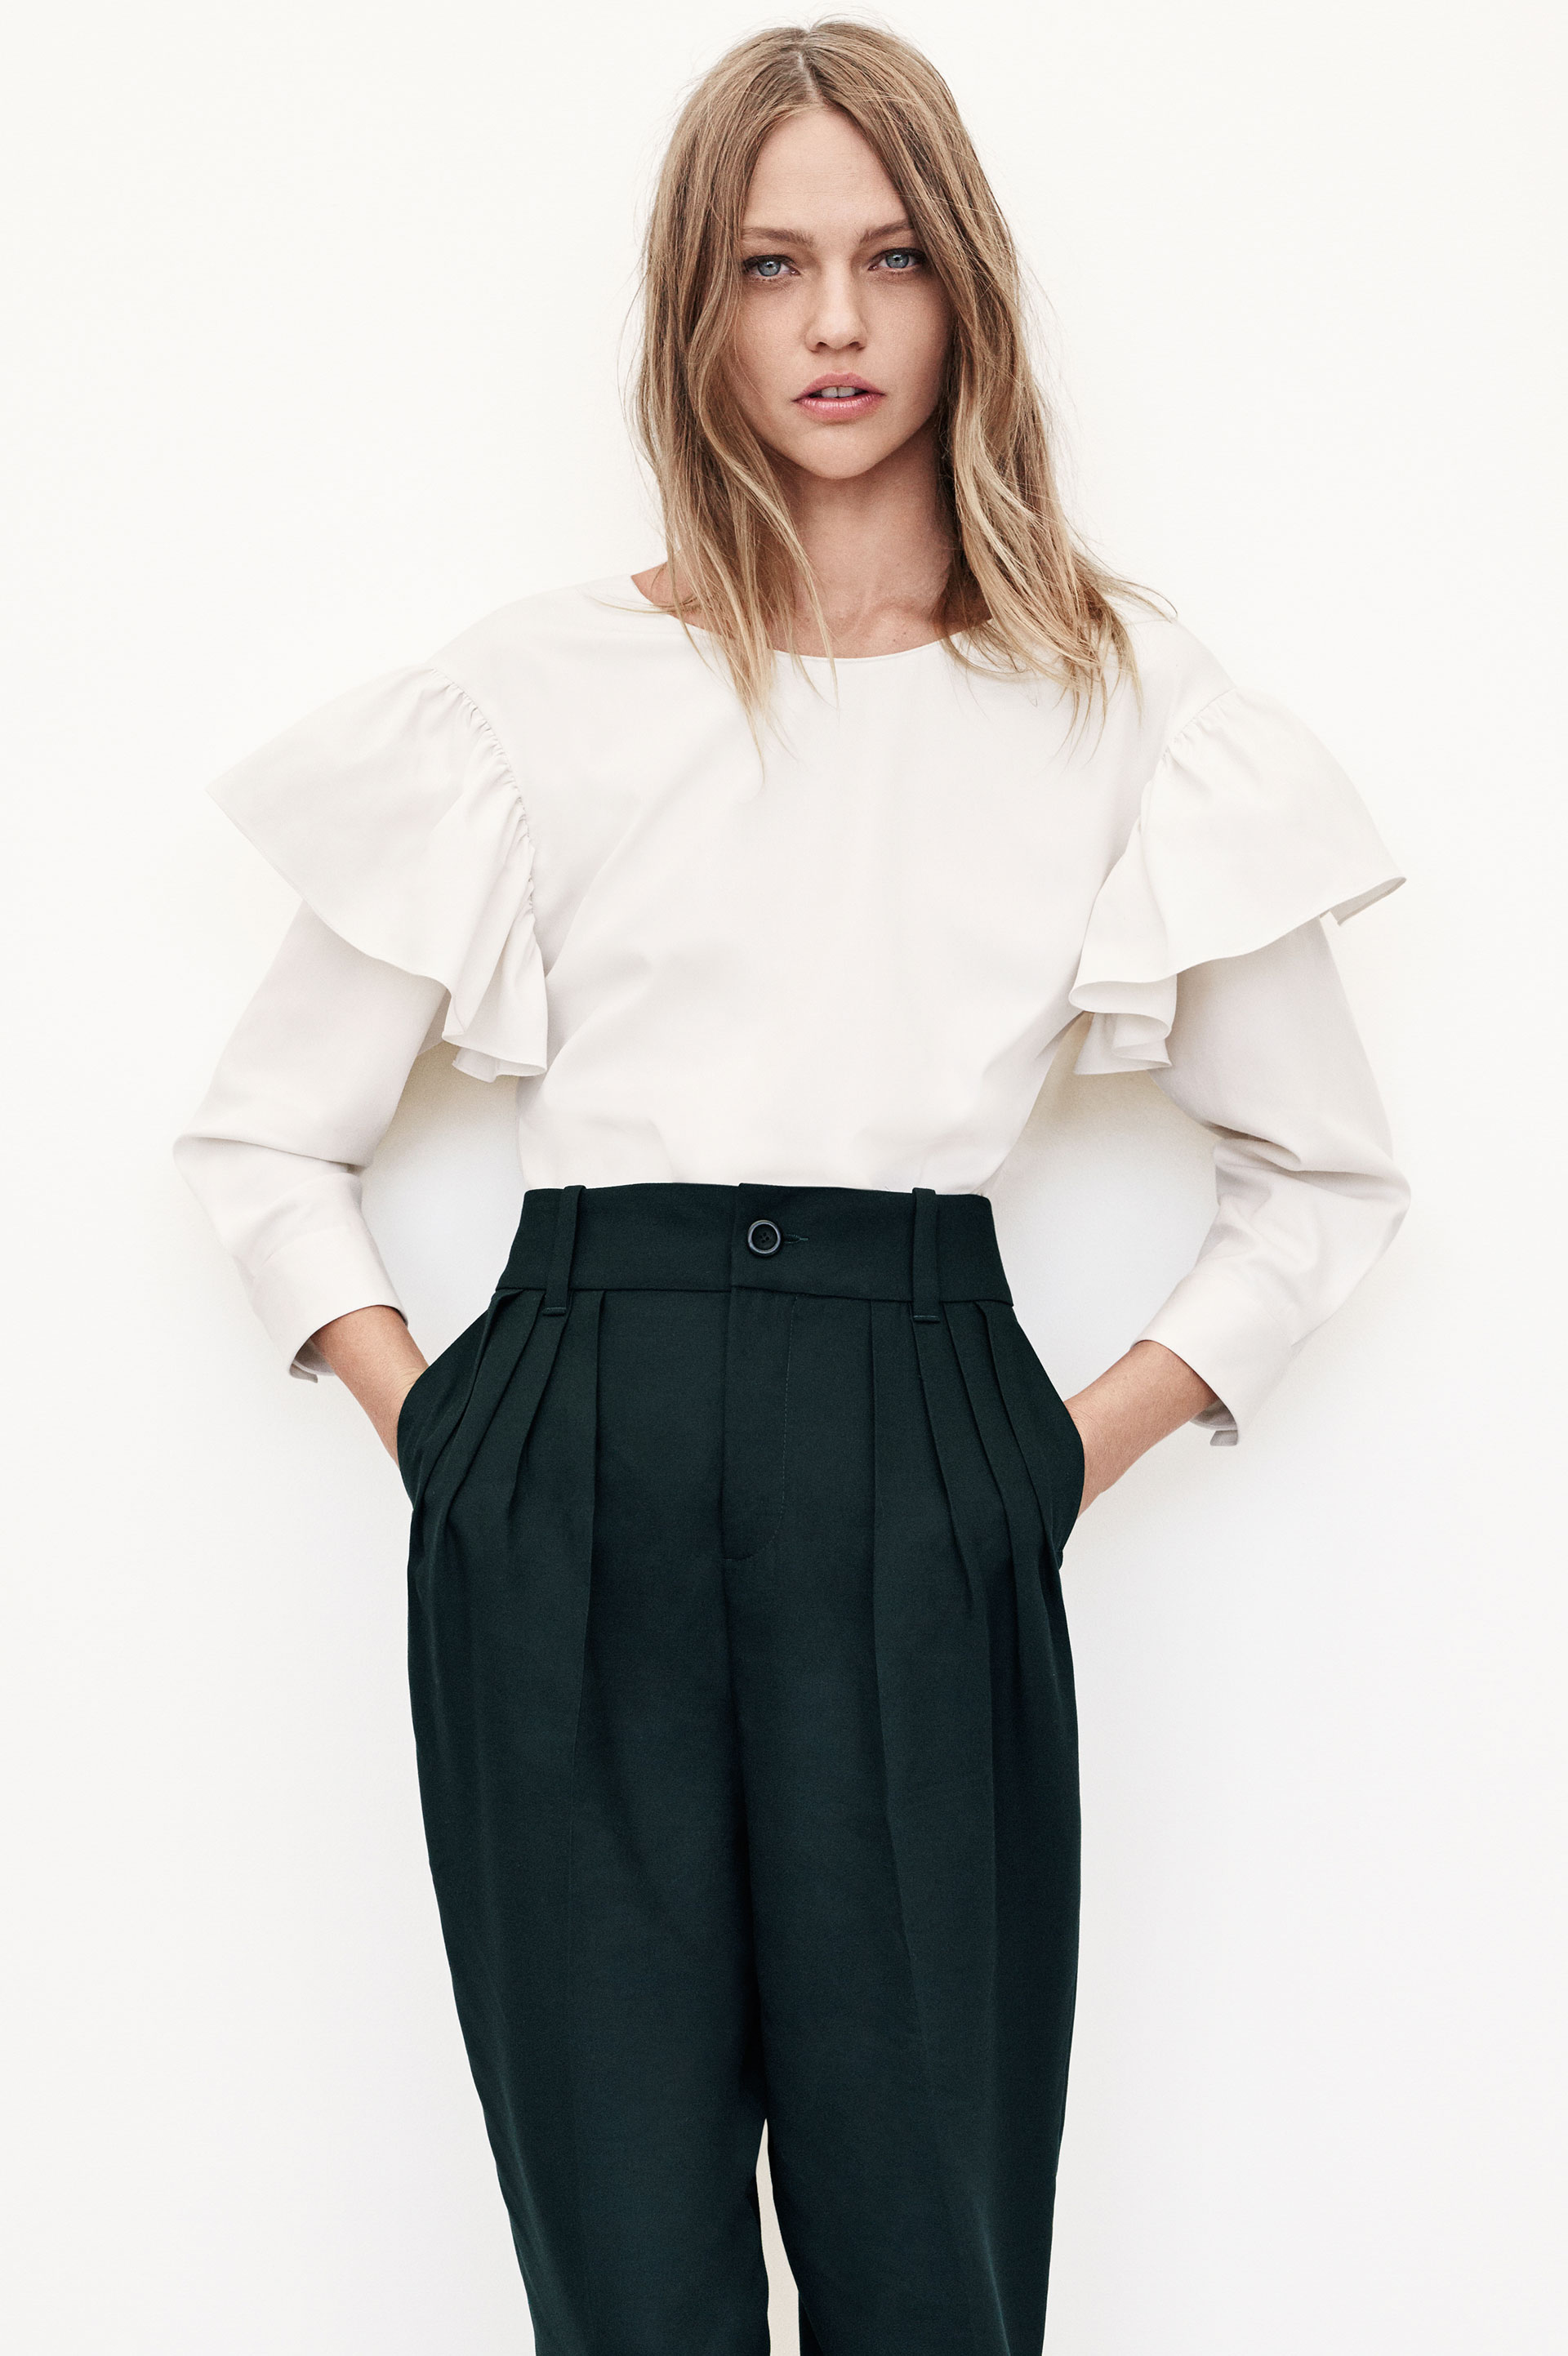 Sustainability Zara Revamps Join Life Sustainable Collection With Trend Driven Styles